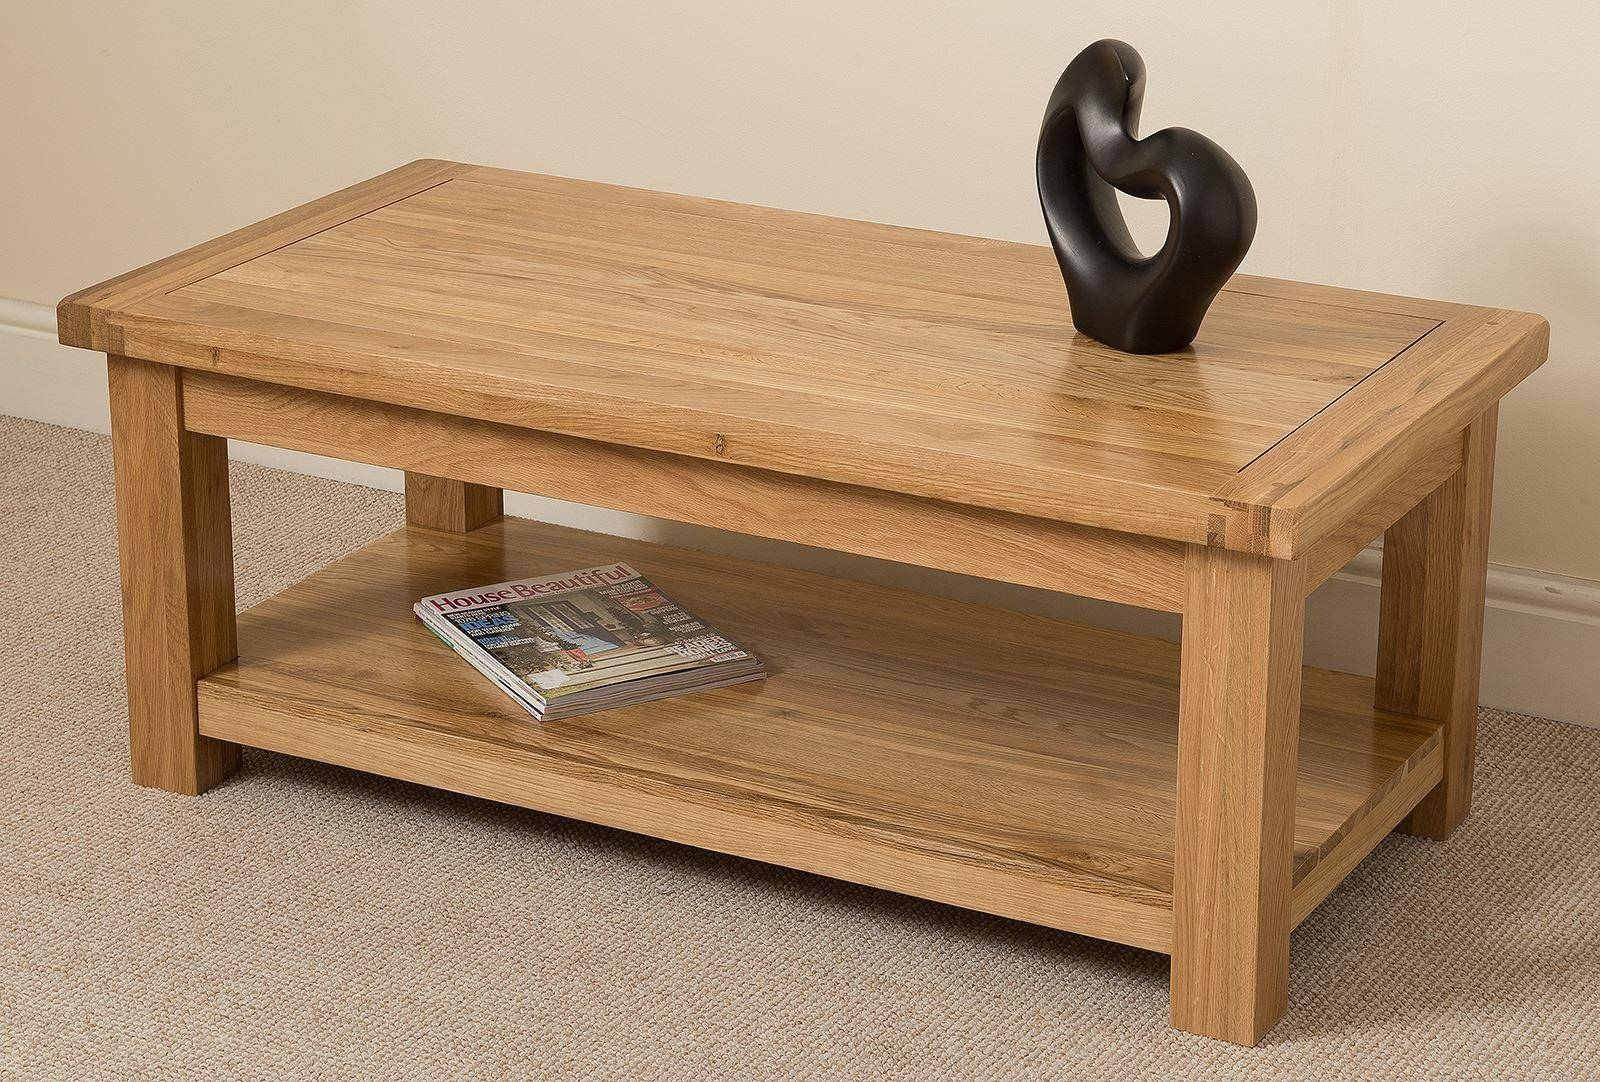 Table. Solid Oak Coffee Table - Home Interior Design throughout Square Oak Coffee Tables (Image 28 of 30)